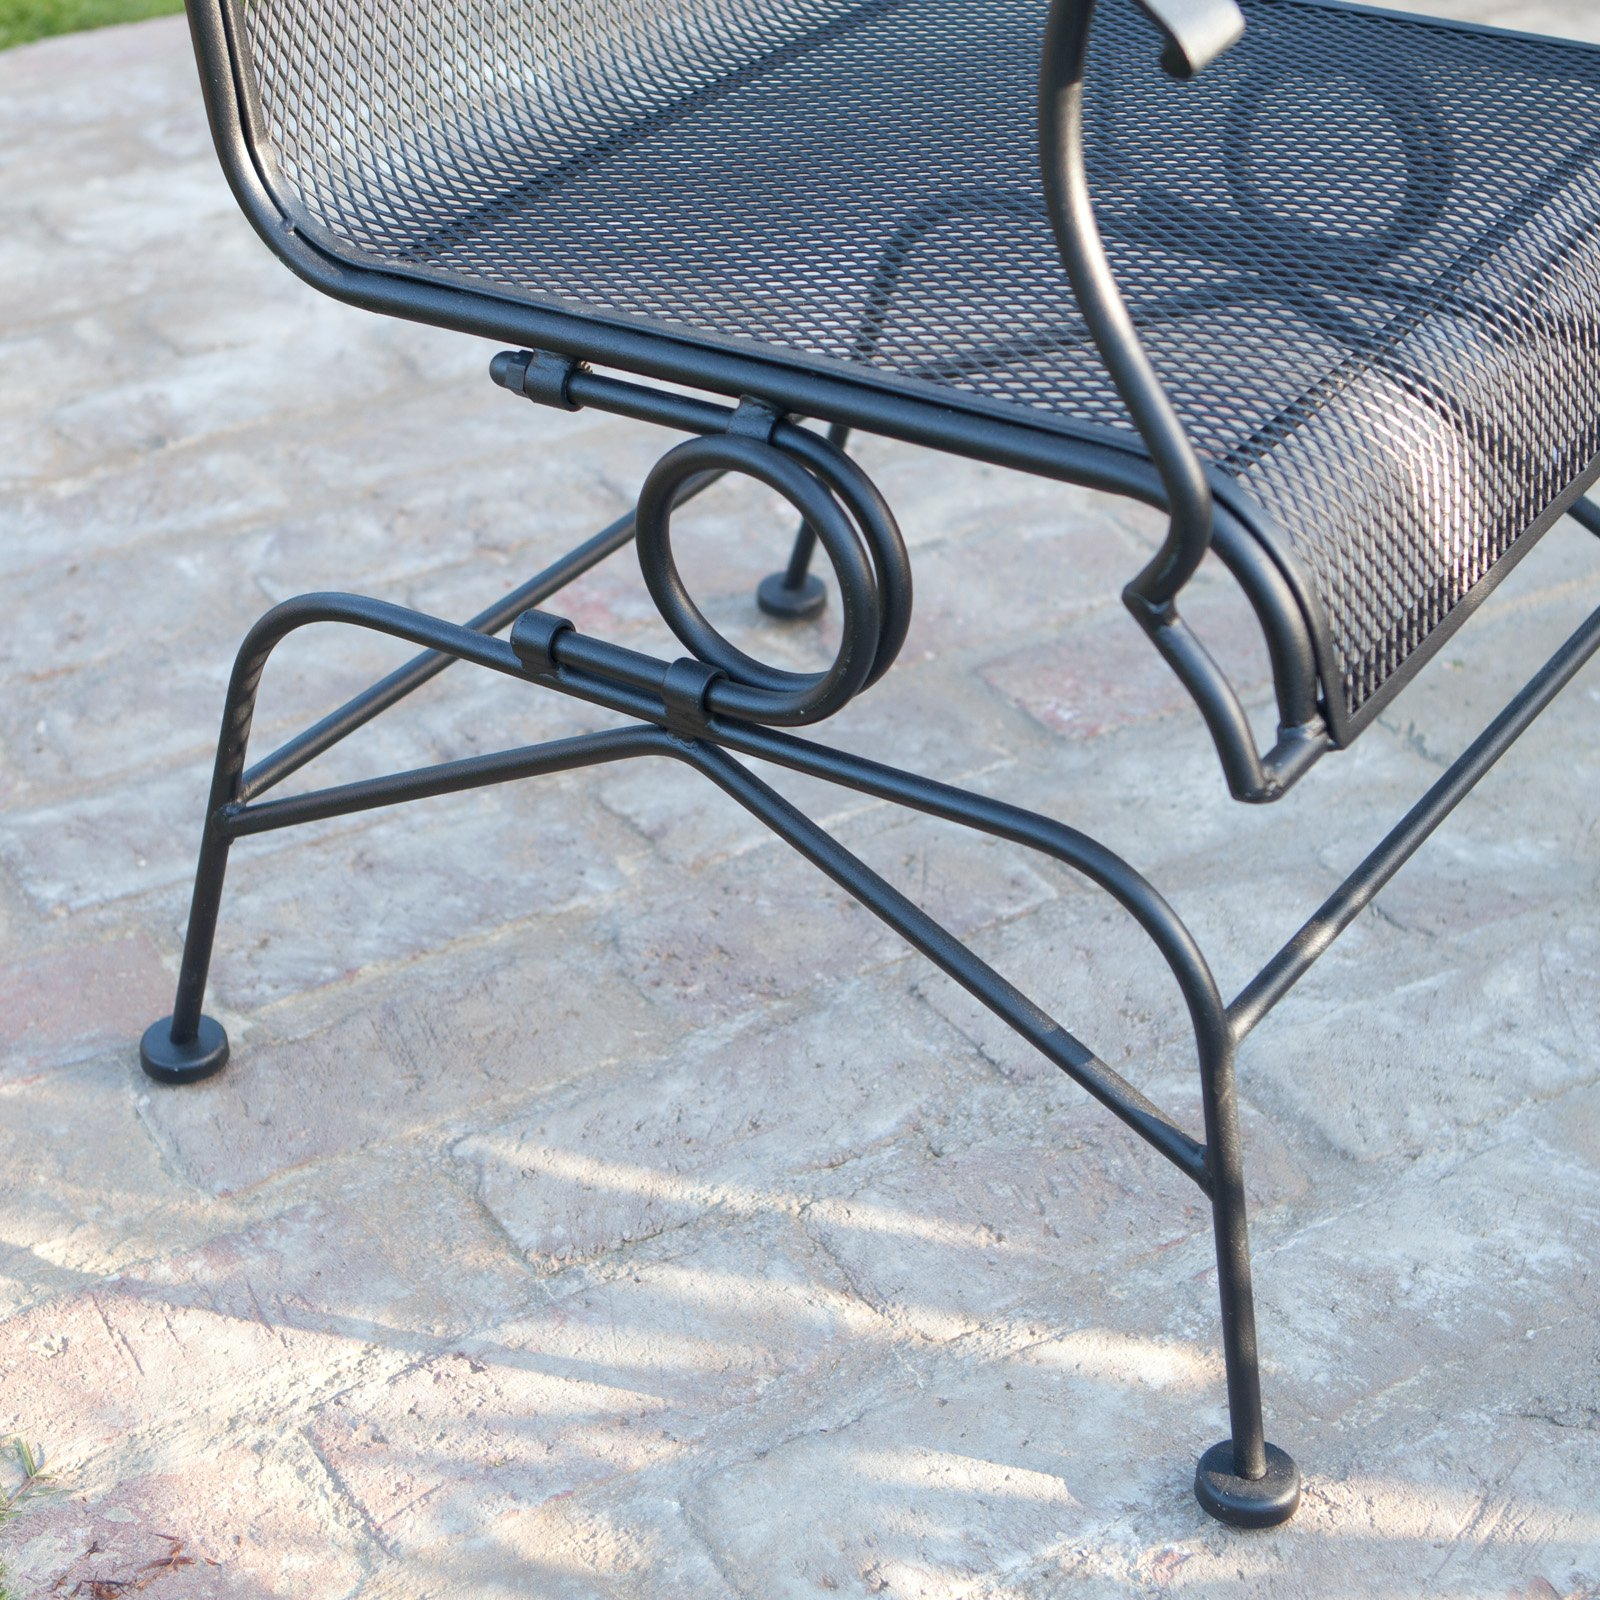 Belham Living Stanton Wrought Iron Coil Spring Dining Chair By Woodard Set Of 2 Textured Black